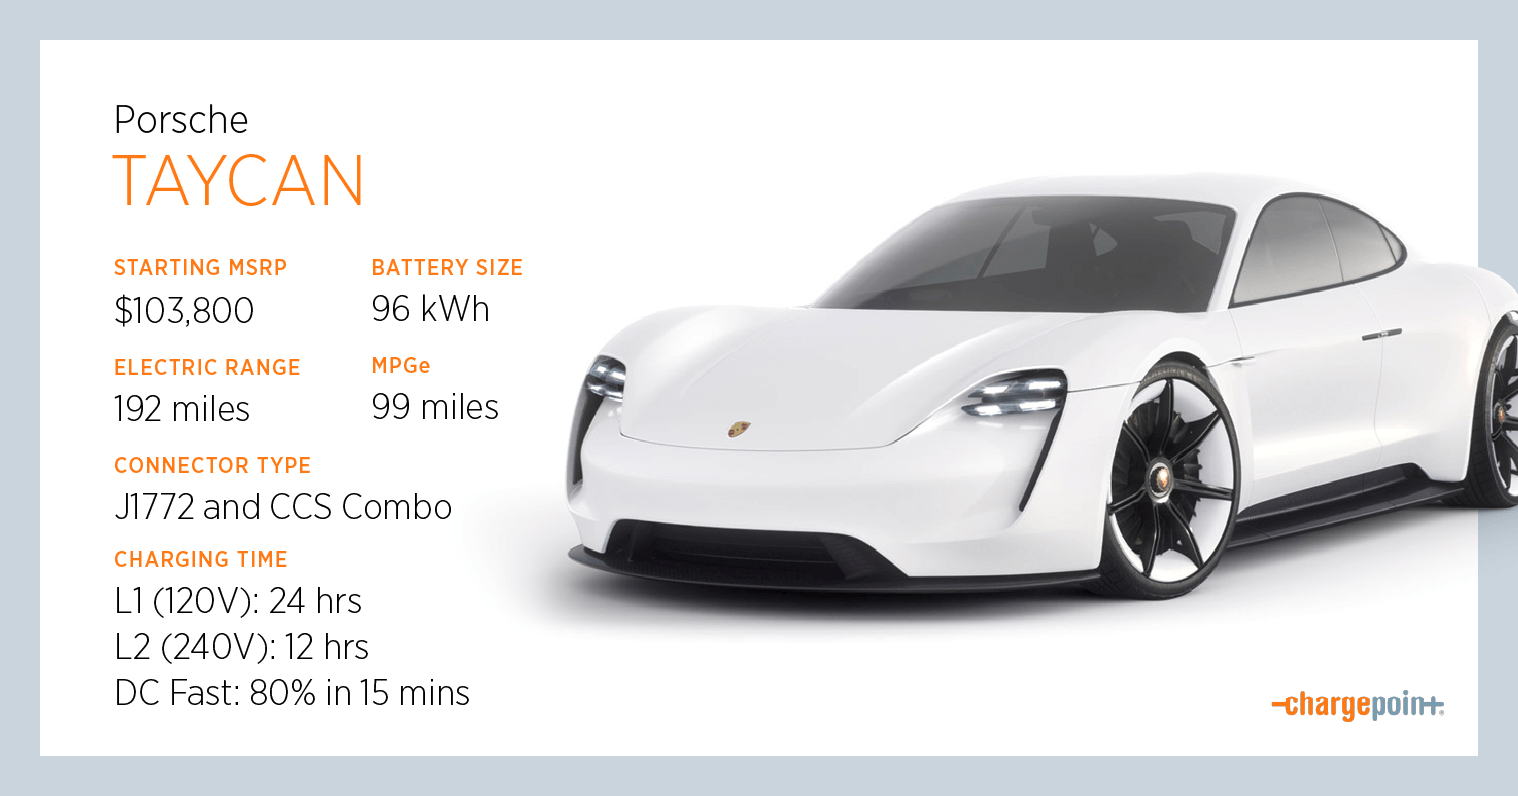 www.chargepoint.com